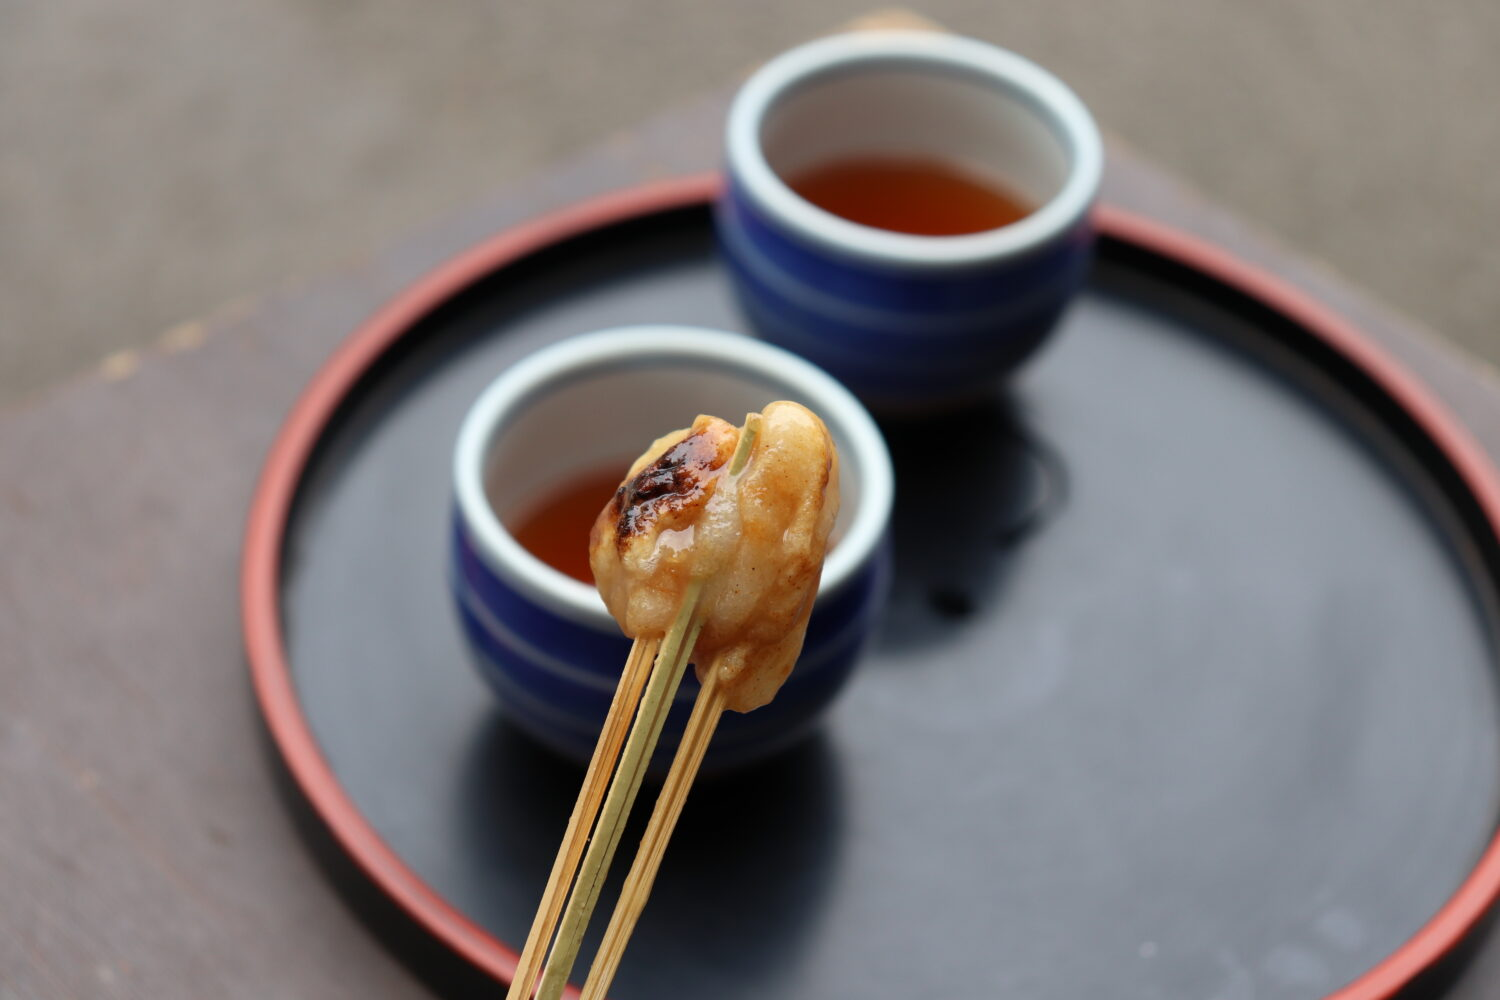 Aburi mochi at Imamiya Shrine in Kyoto